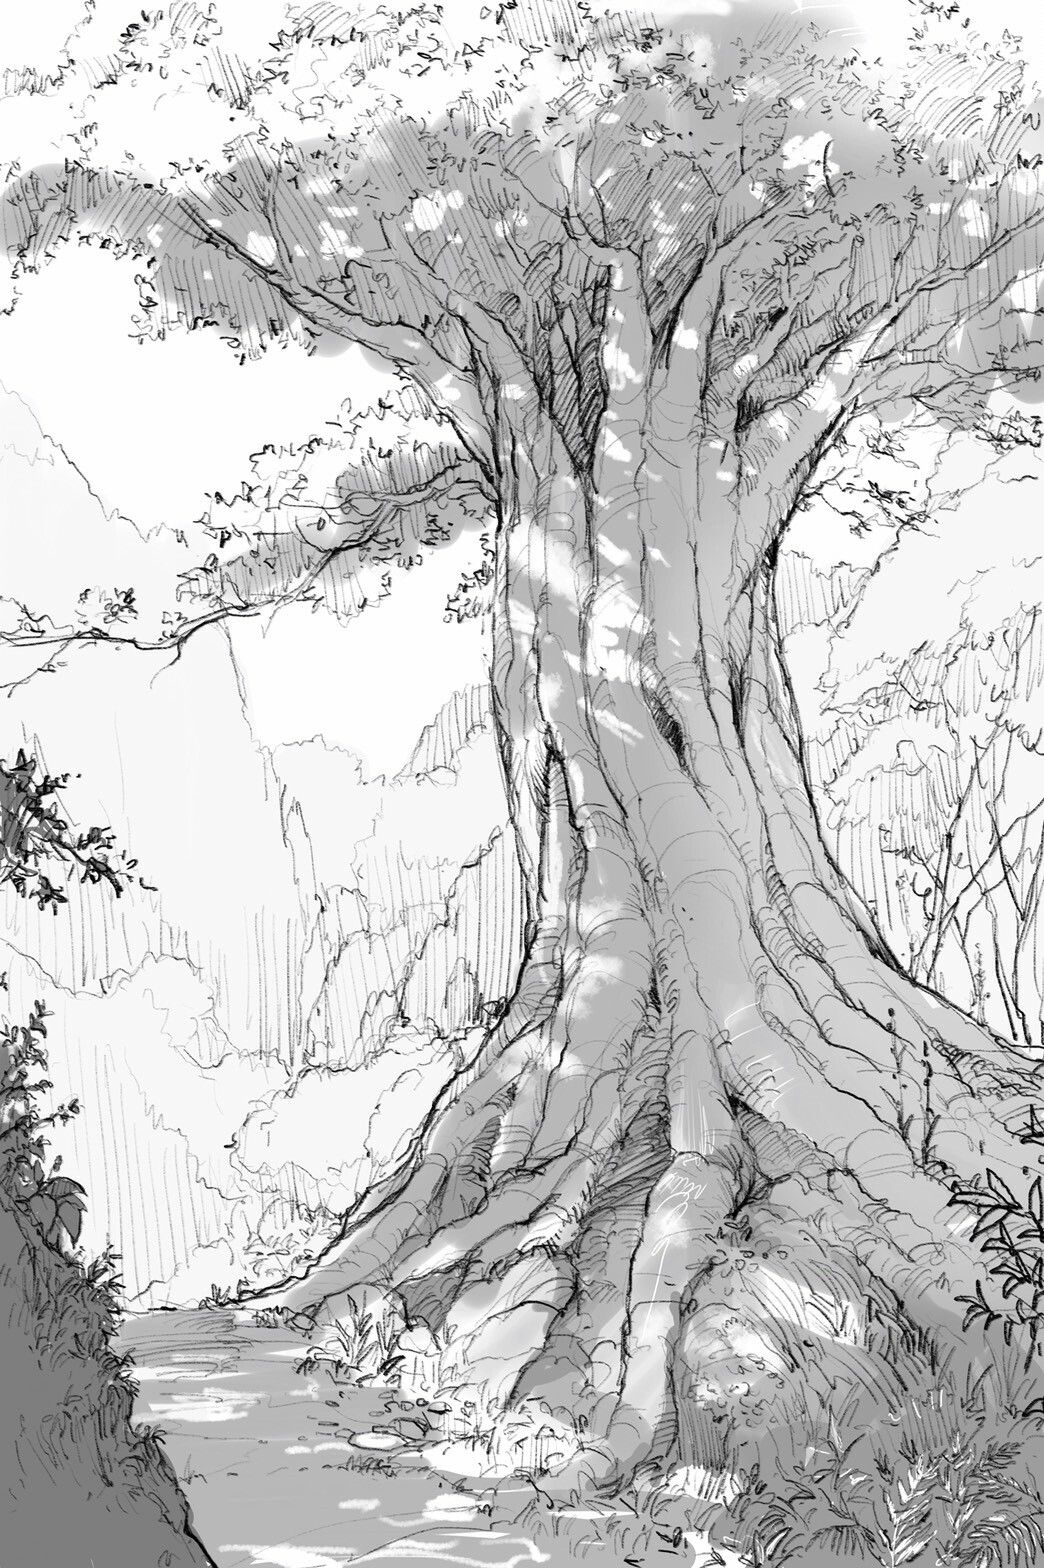 Arbol tree sketches drawings of trees realistic drawings drawing sketches sketching